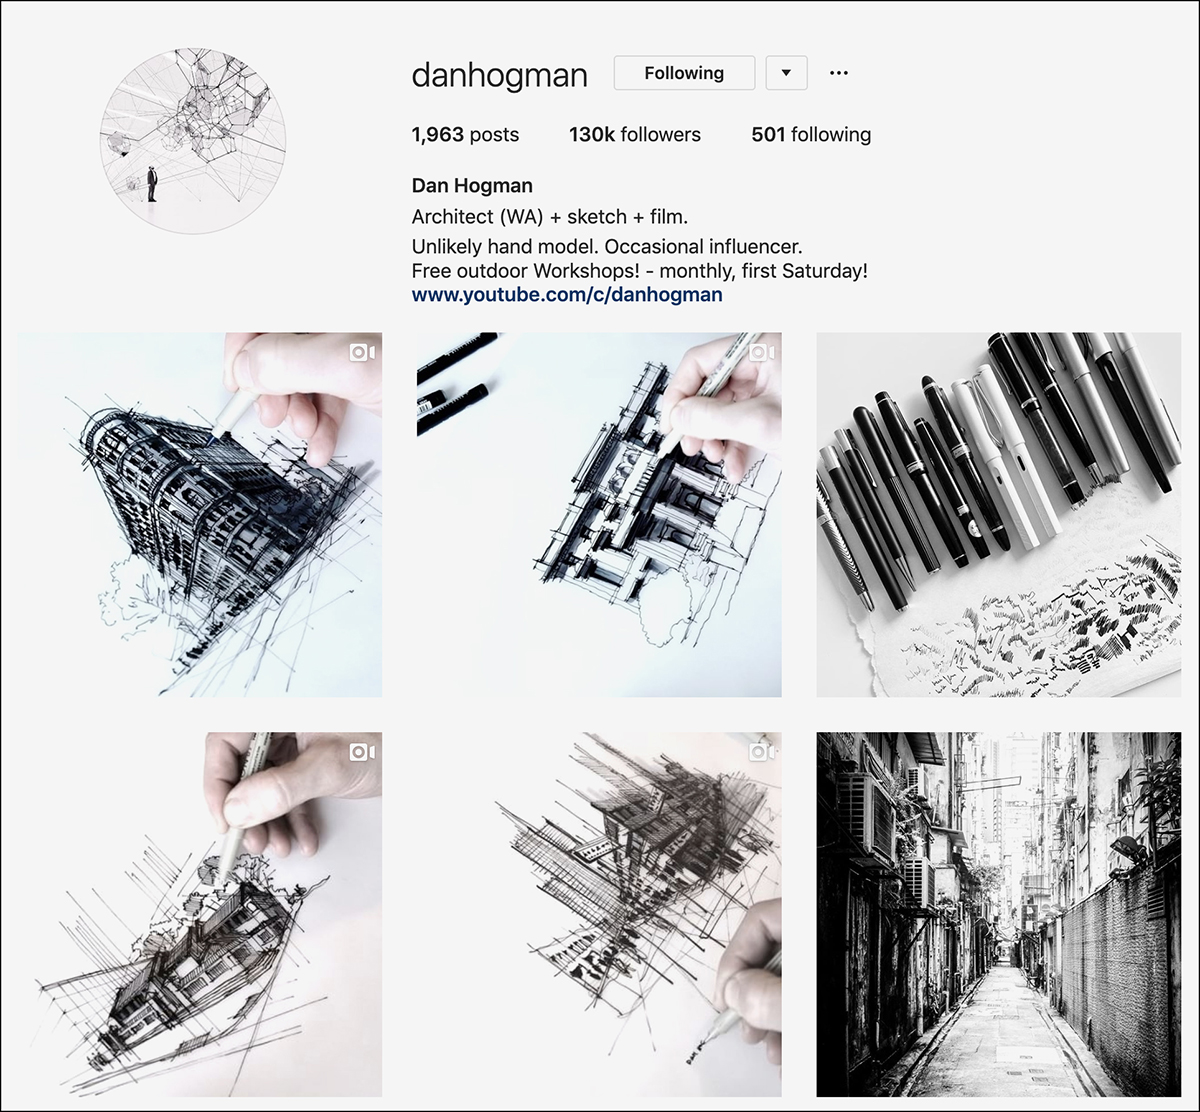 danhogman Instagram account - good for sketching